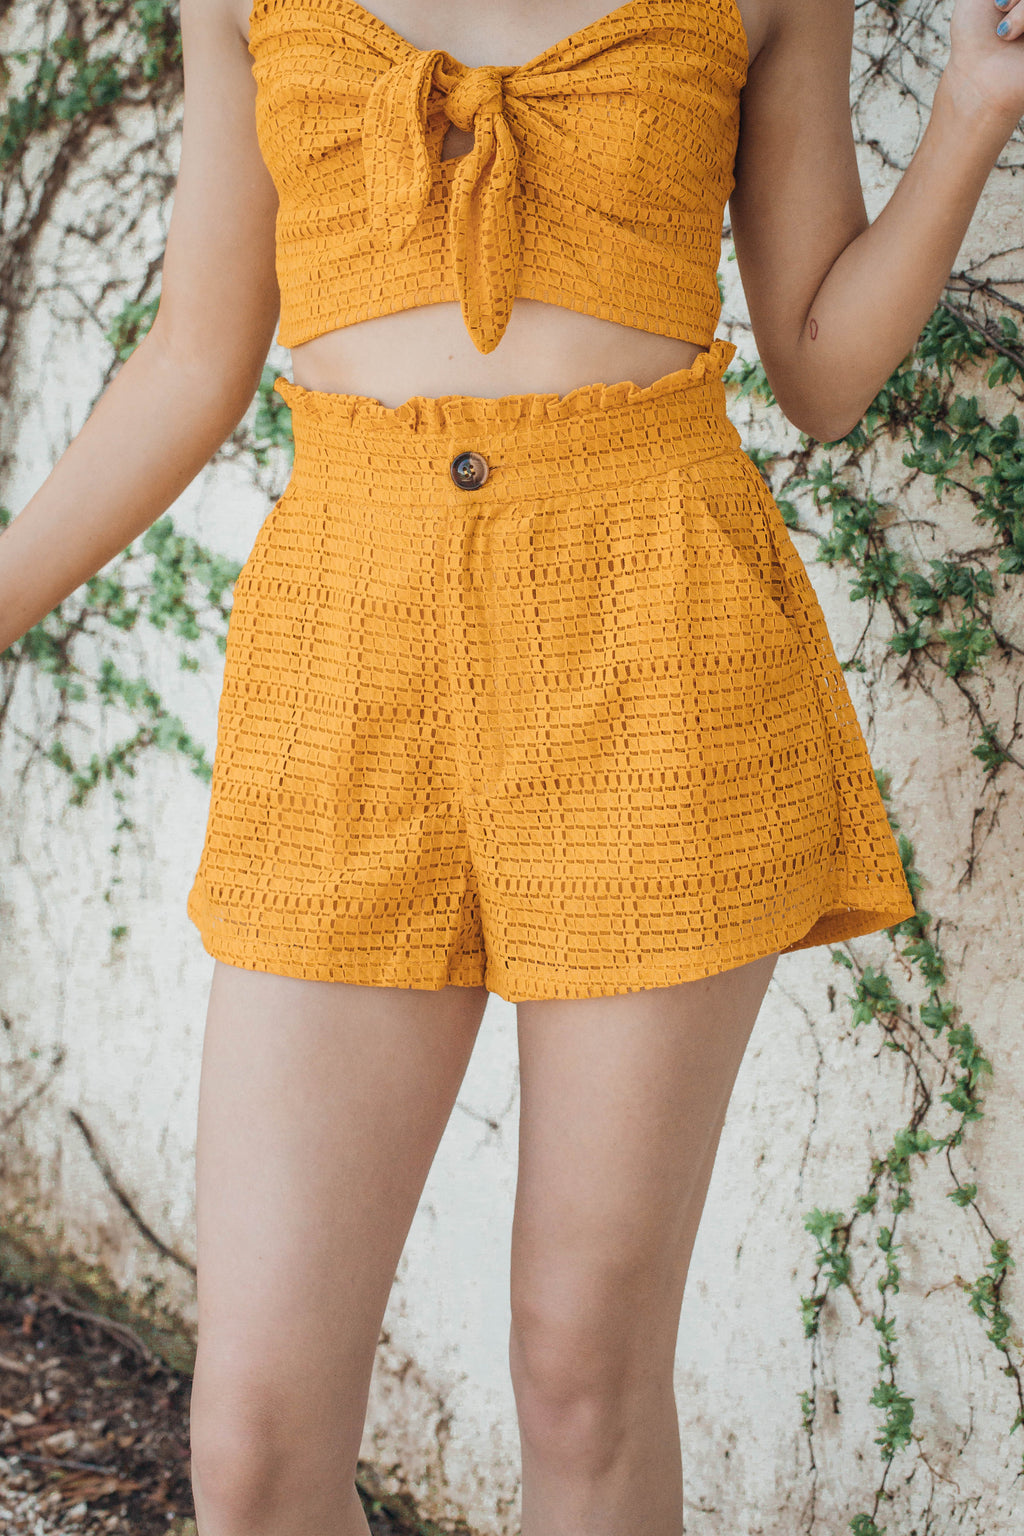 Cherry Pocketed Shorts